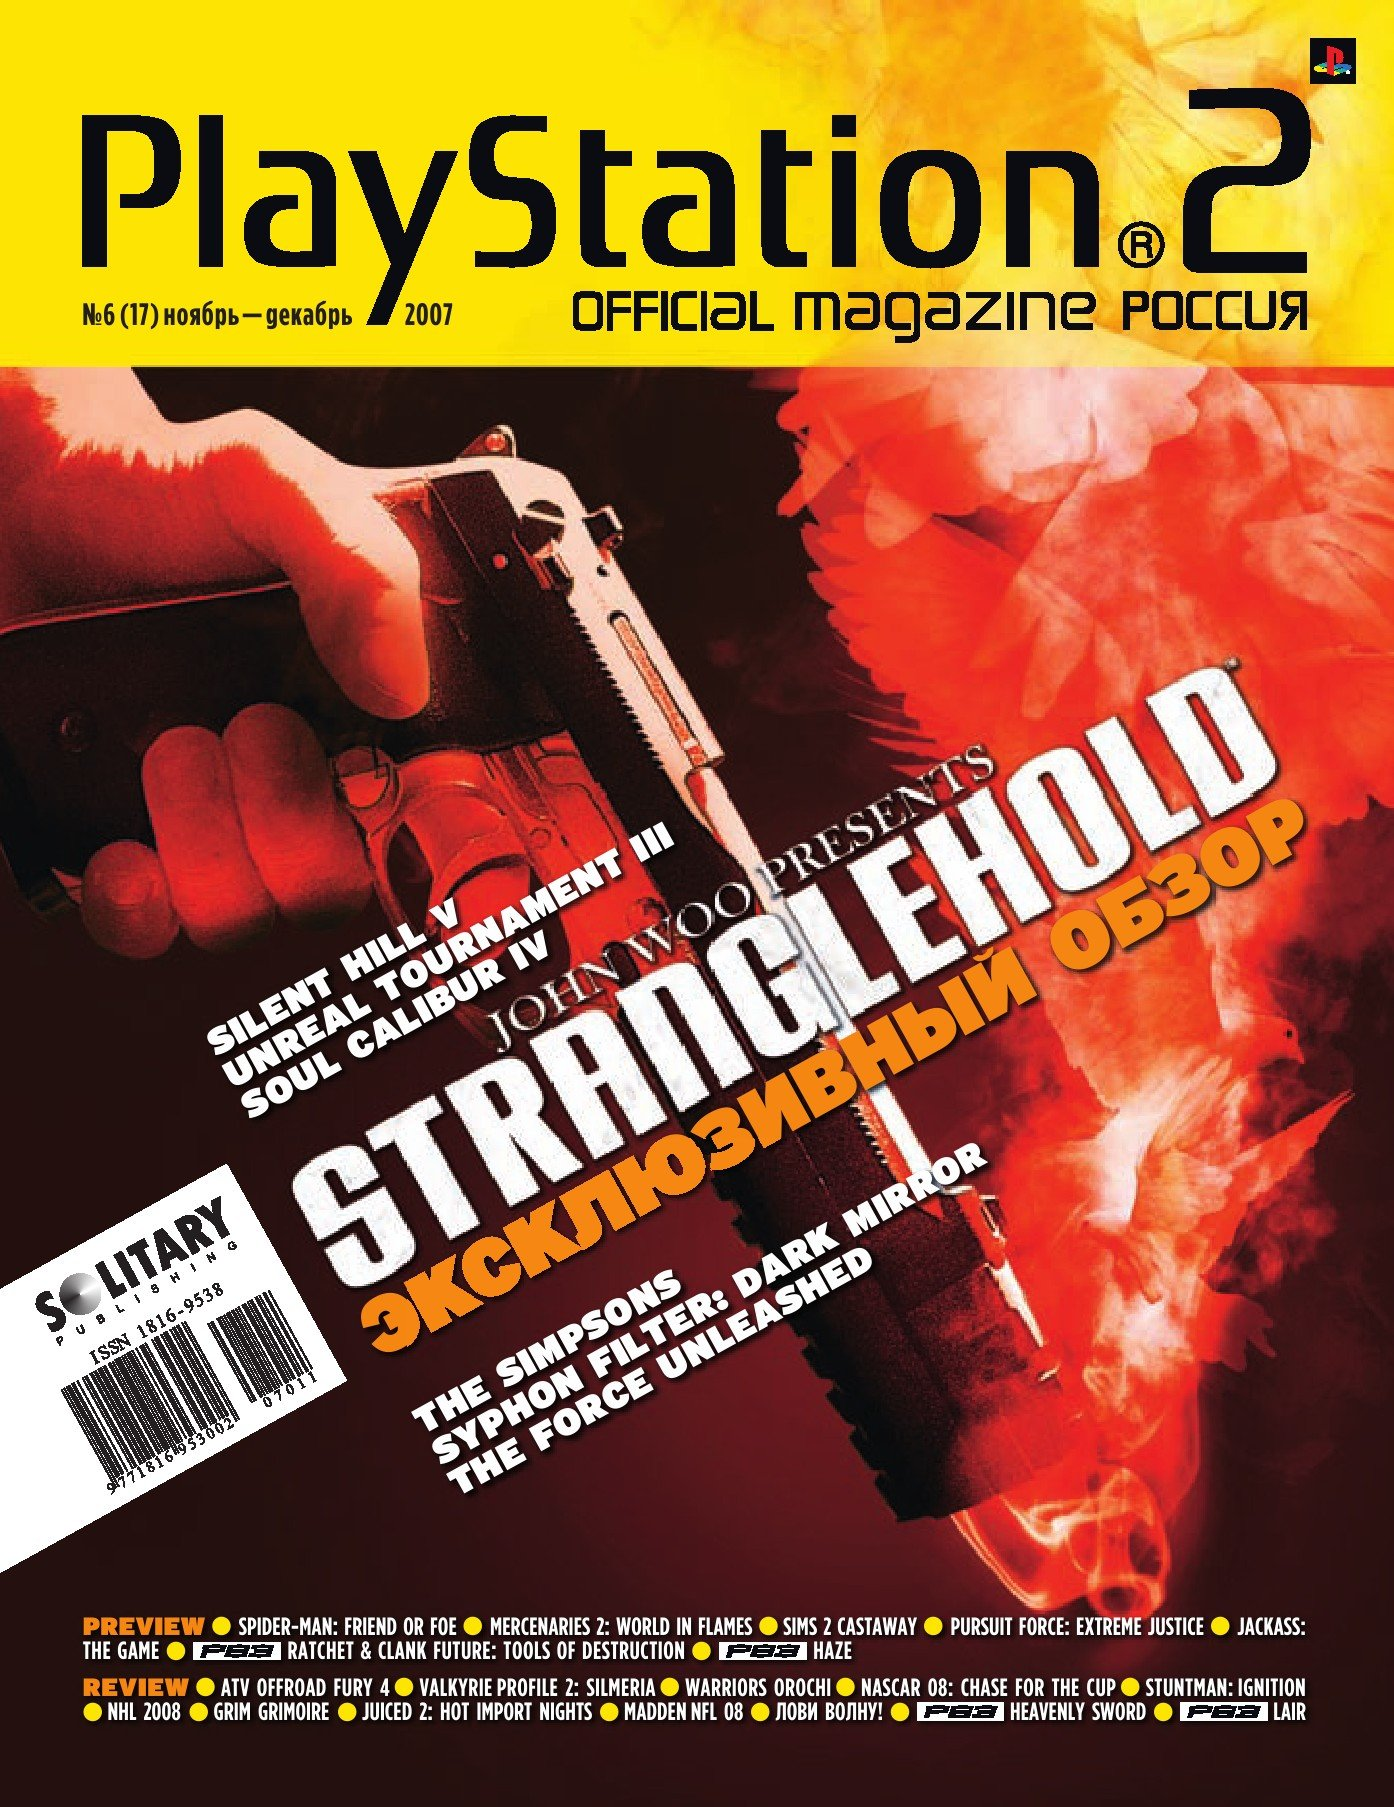 Playstation 2 Official Magazine (Russia) Issue 17 - Nov./Dec. '07